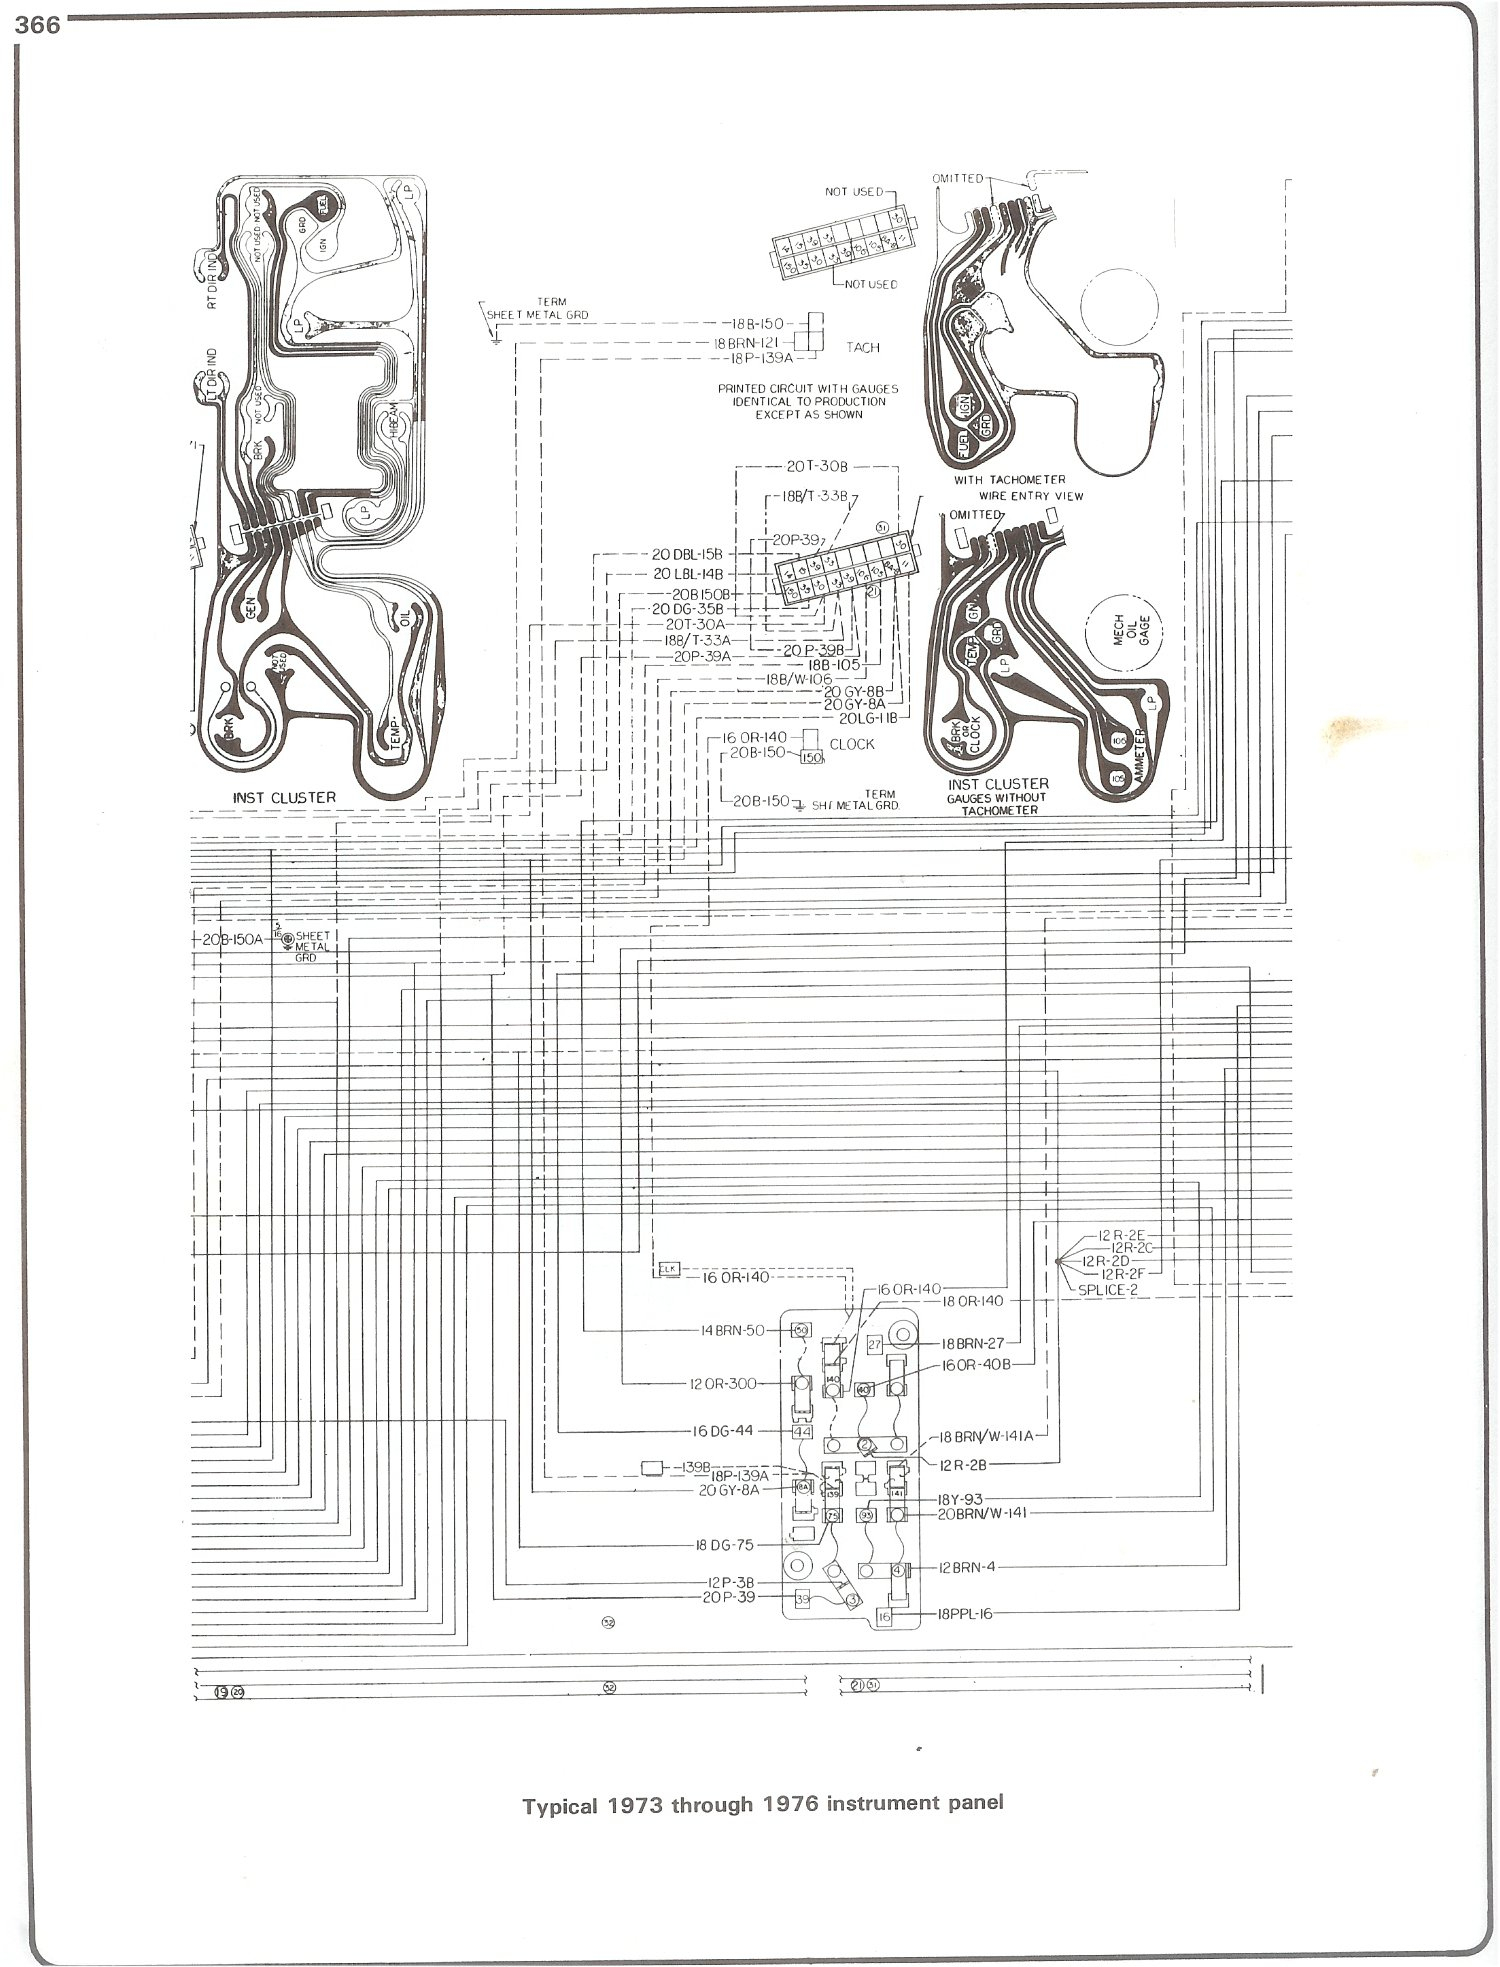 Diagram Chevy Truck Wiring Diagram Full Version Hd